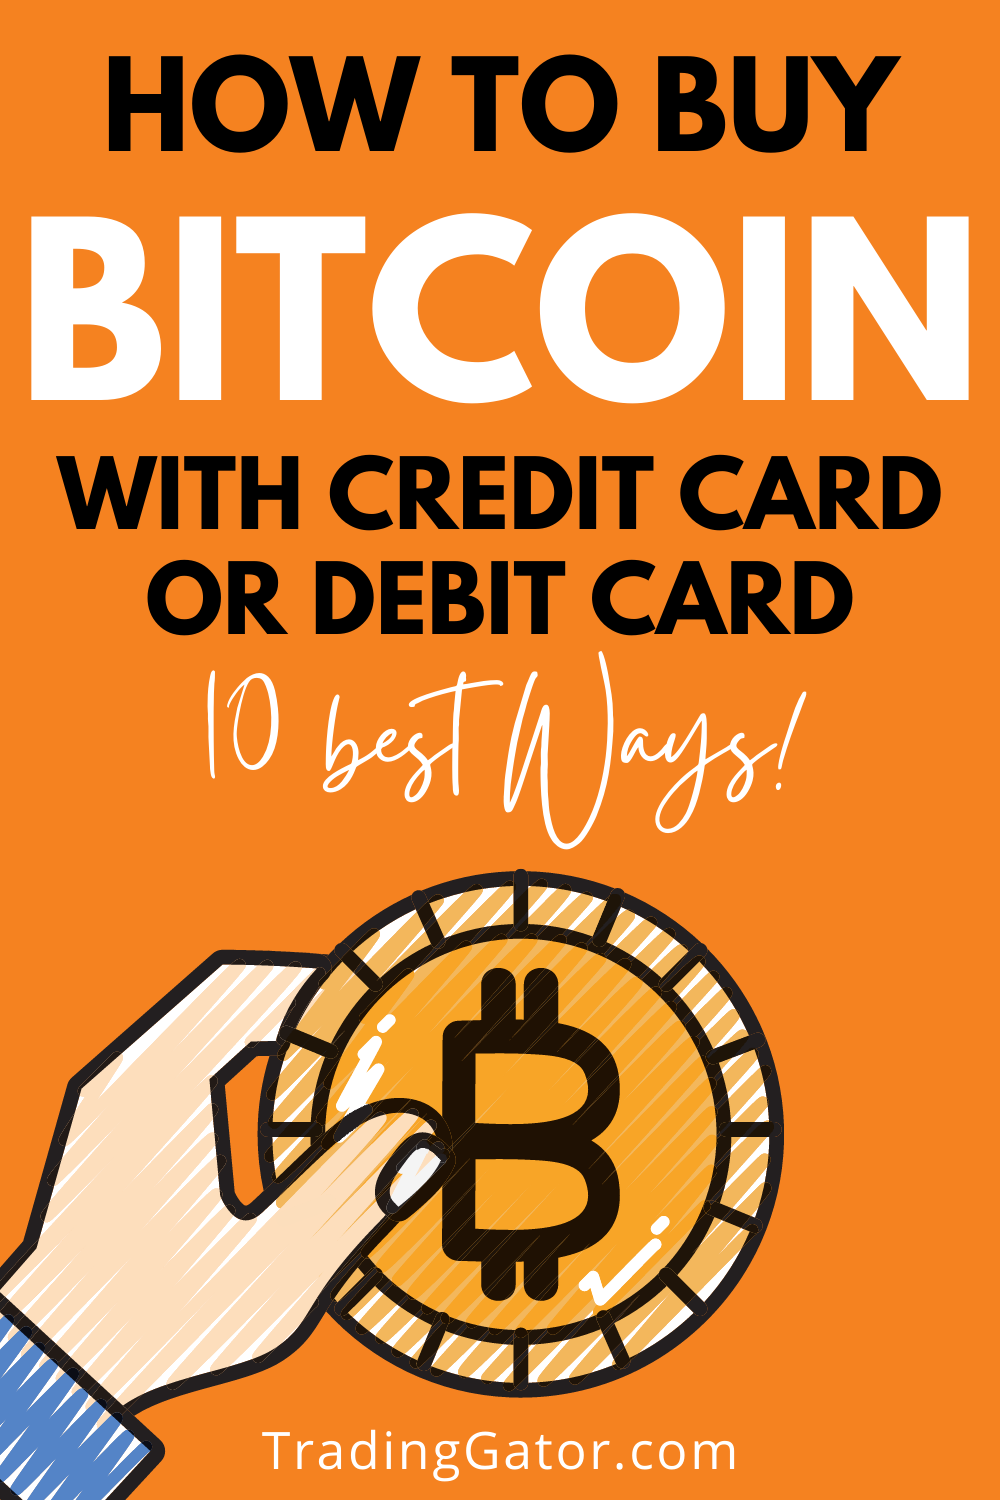 How To Buy Bitcoins With Credit Card Or Debit Card 10 Best Ways In 2020 Buy Bitcoin Debit Card Online Broker